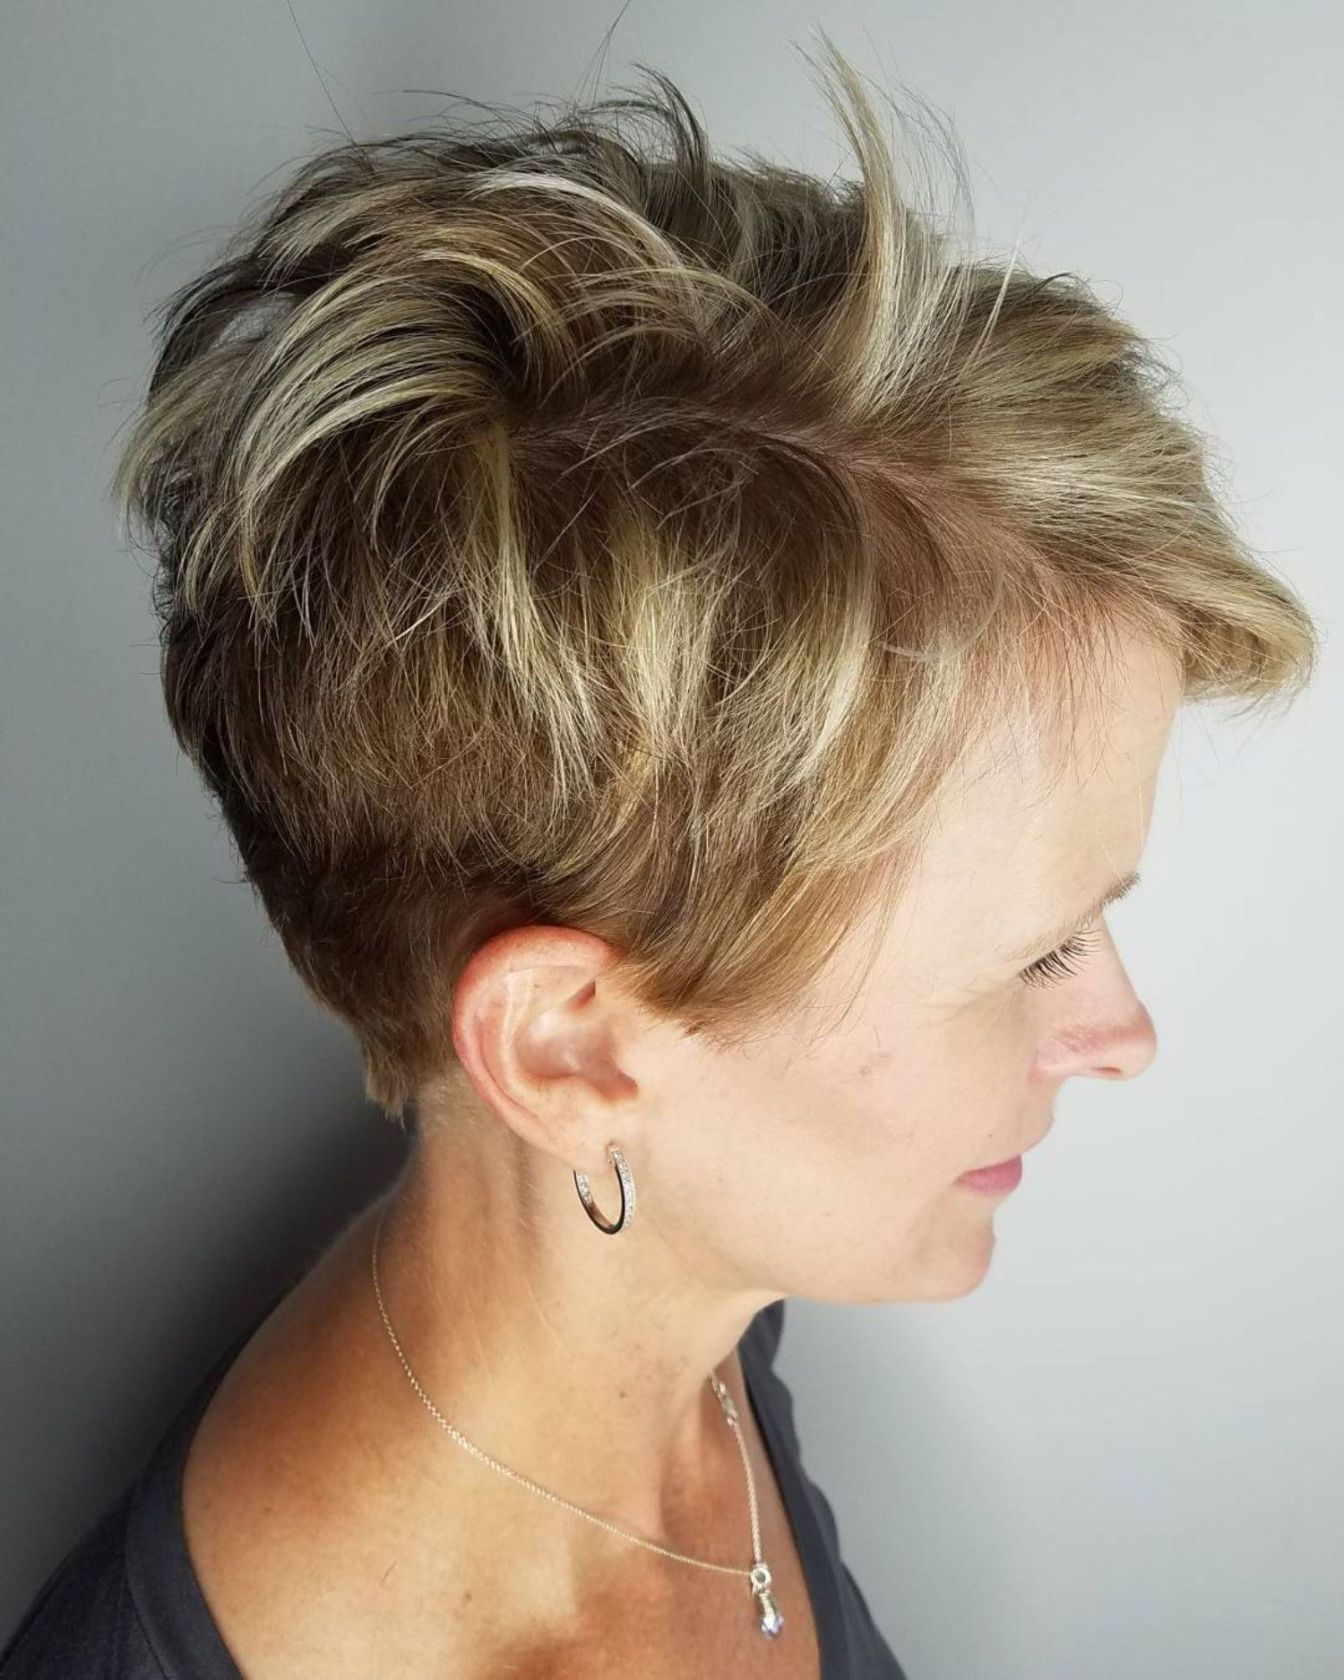 90 Classy And Simple Short Hairstyles For Women Over 50 Short Layered Haircuts Short Hair With Layers Short Hairstyles For Women